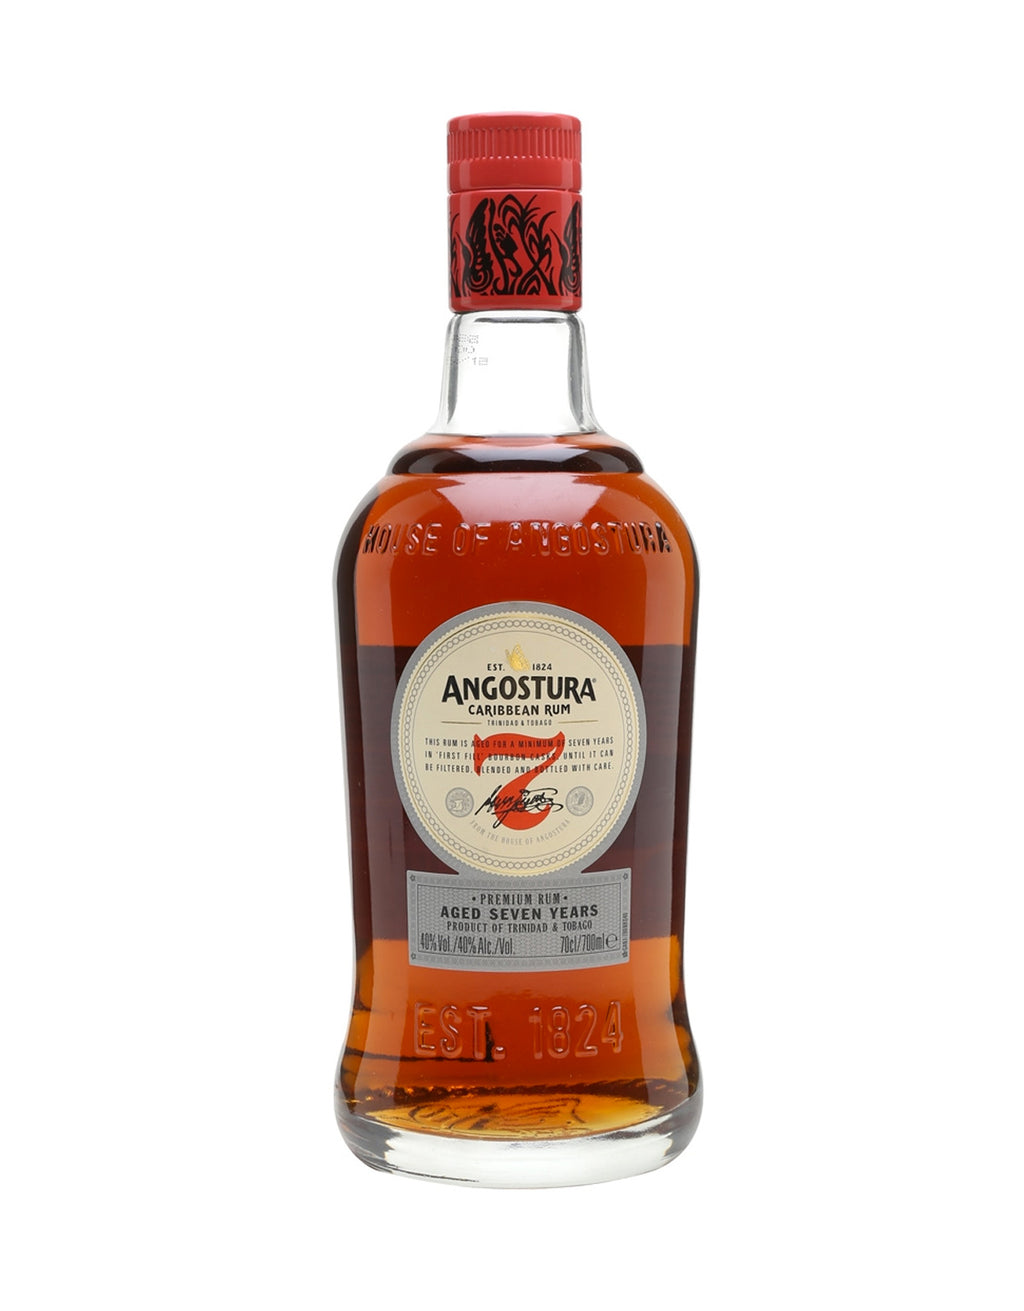 Angostura Dark Rum 7 Year Old